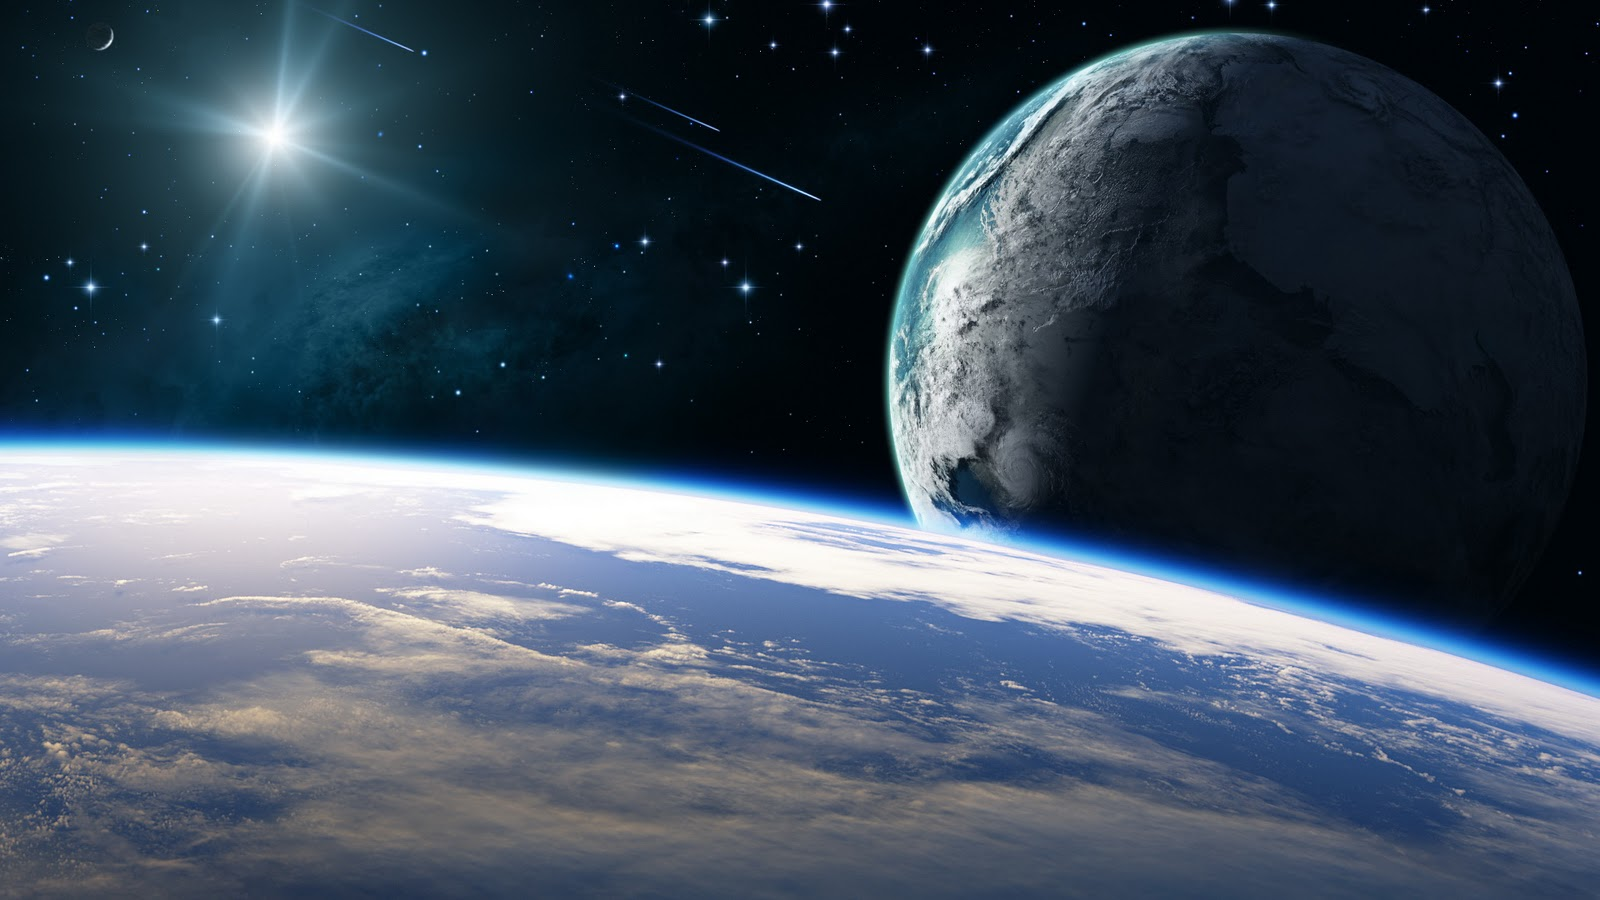 ... image from outer space hd wallpaper, 2012 free download wallpapers